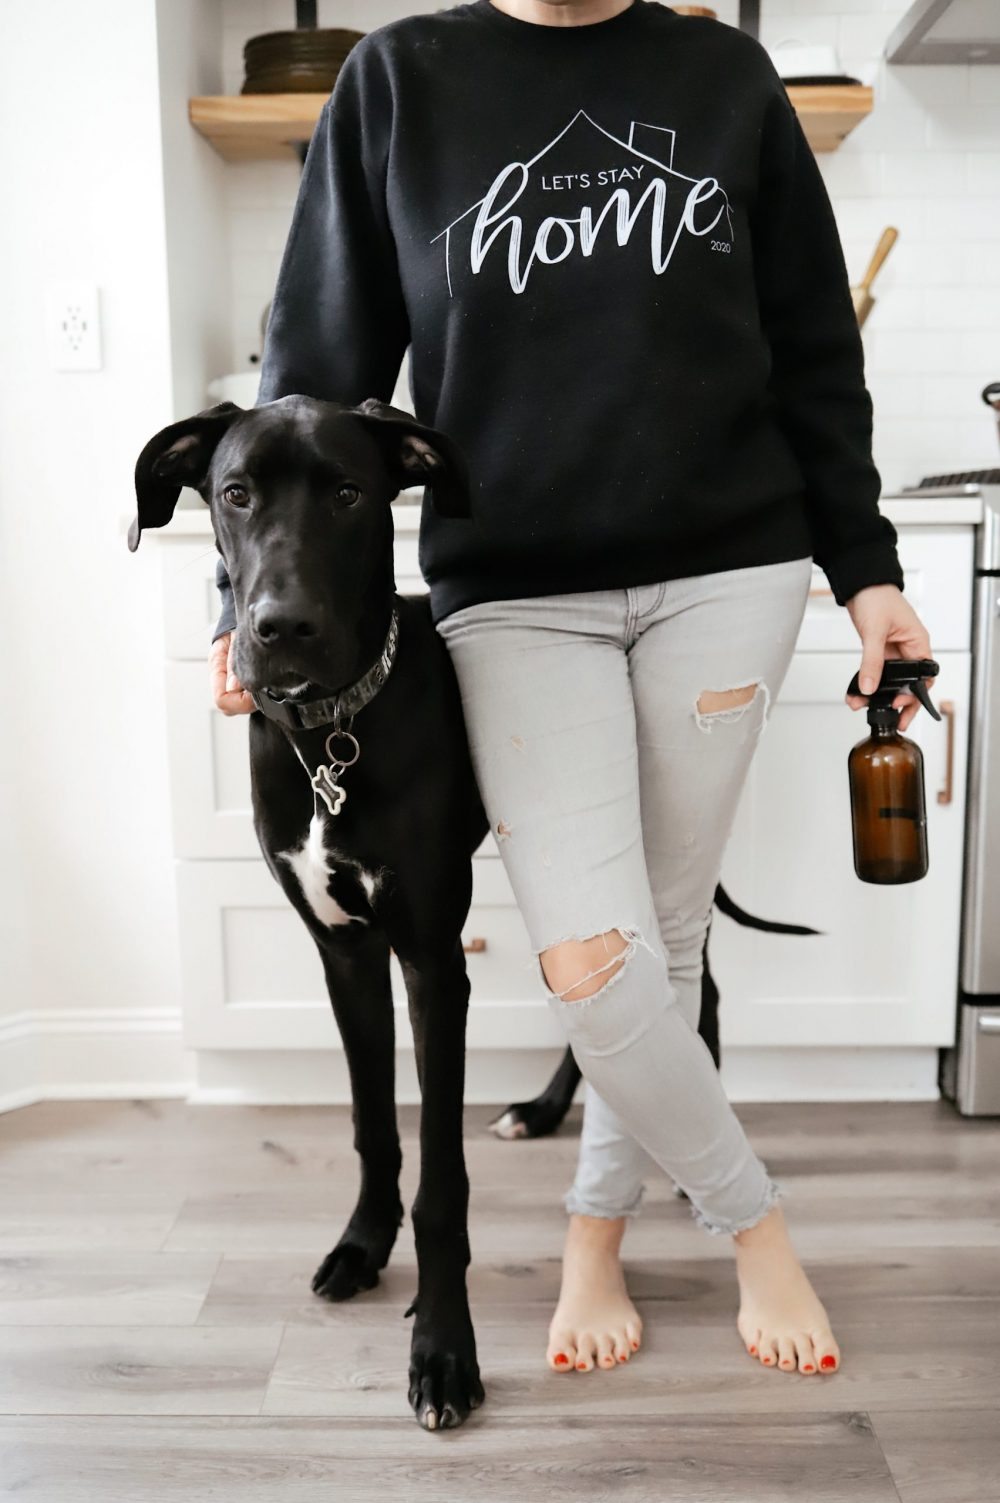 Essential Oils Safe for Dog Deodorizer Spray |Dog Deodorizer Spray by popular Florida lifestyle blog, Fresh Mommy Blog:image of a woman wearing a Let's Stay Home sweatshirt and standing next to her black Great Dane dog